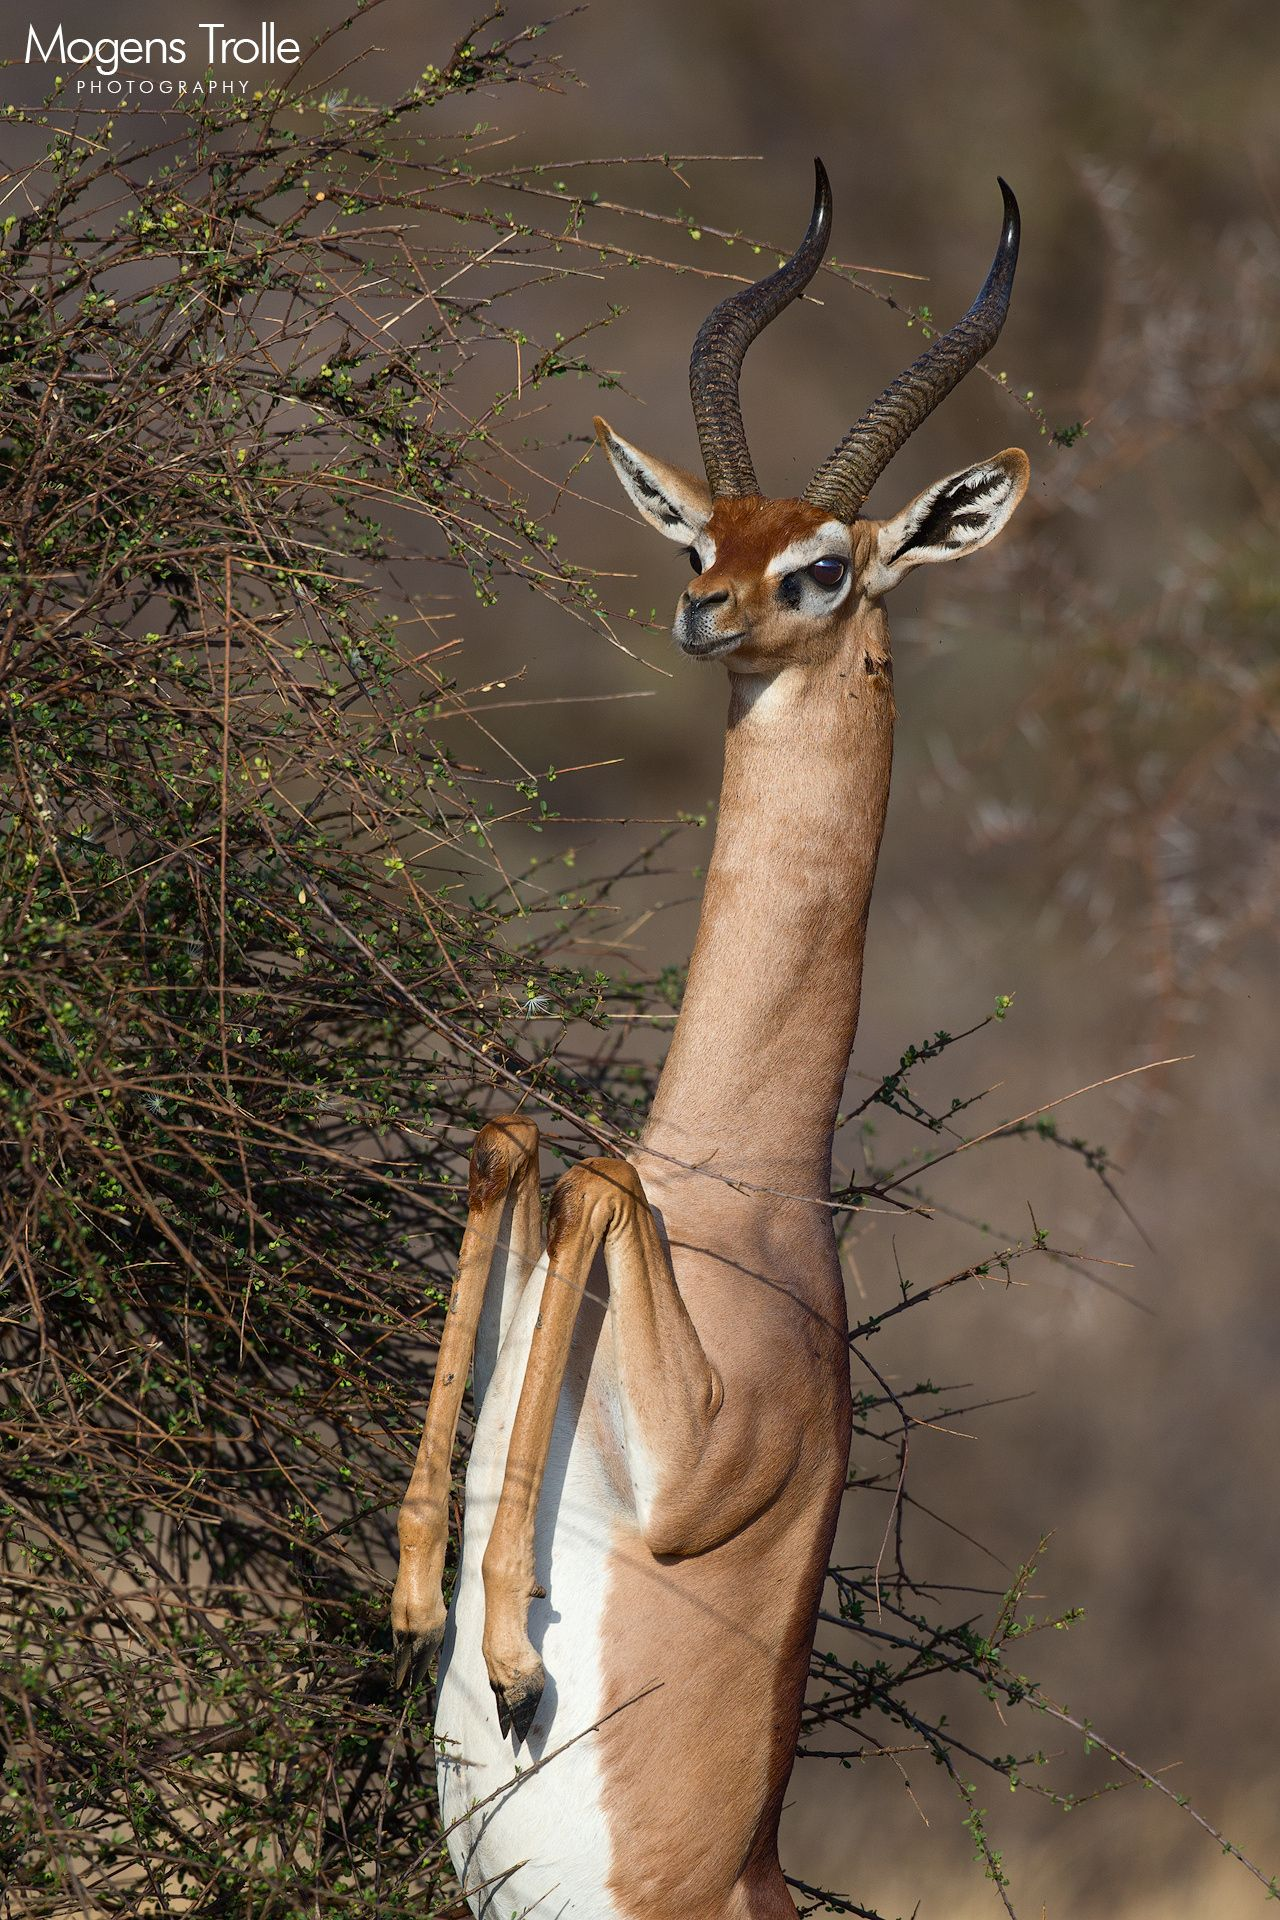 The gerenuk, aka giraffe-necked antelope, characteristically feeds by standing on its hindlegs and using the frontlegs to support itself against the bush it feeds from. When it is ready to get back down on all four it takes a step or two back and that gives you less than a second to catch it as it stands unsupported in a bizarre-looking bipedal stance with its spindle legs bent in a preying mantis fashion.  Samburu, Kenya.